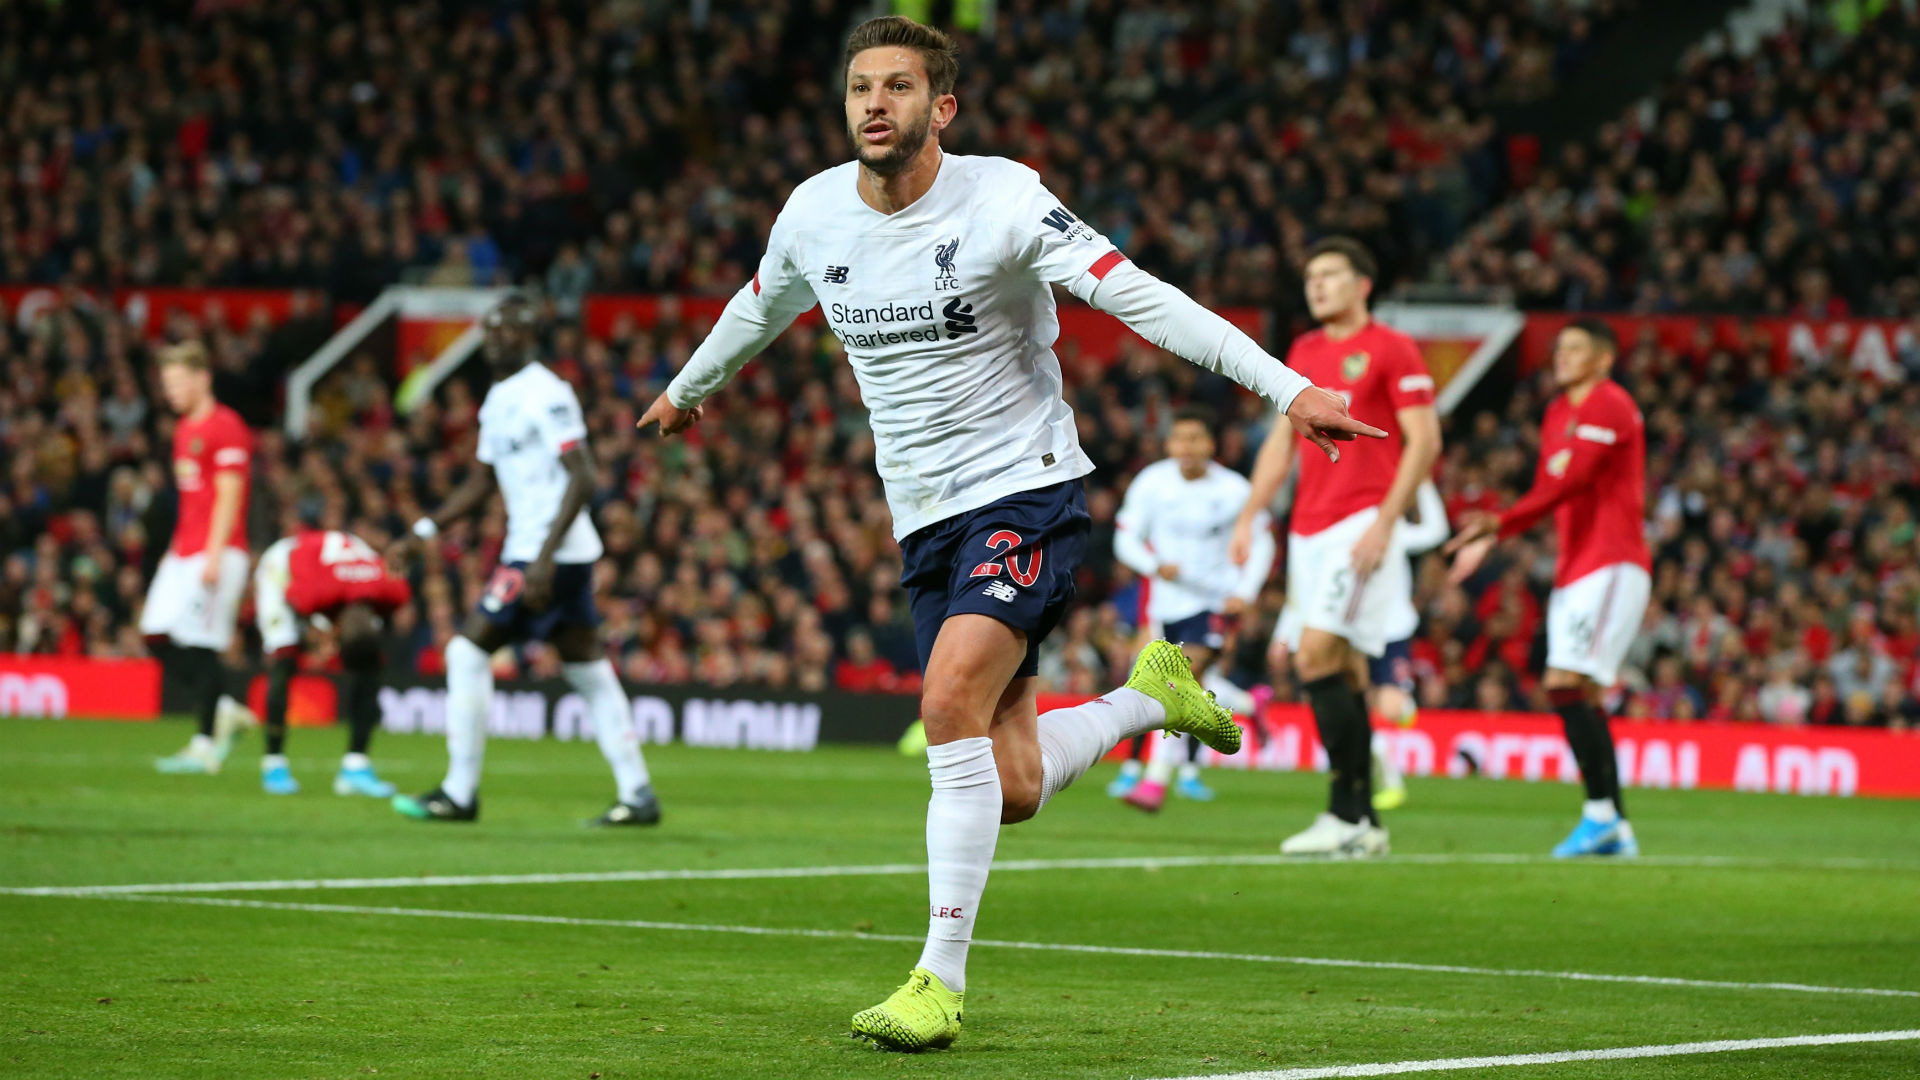 Manchester United 1-1 Liverpool: Lallana rescues point but Reds' winning streak comes to an end